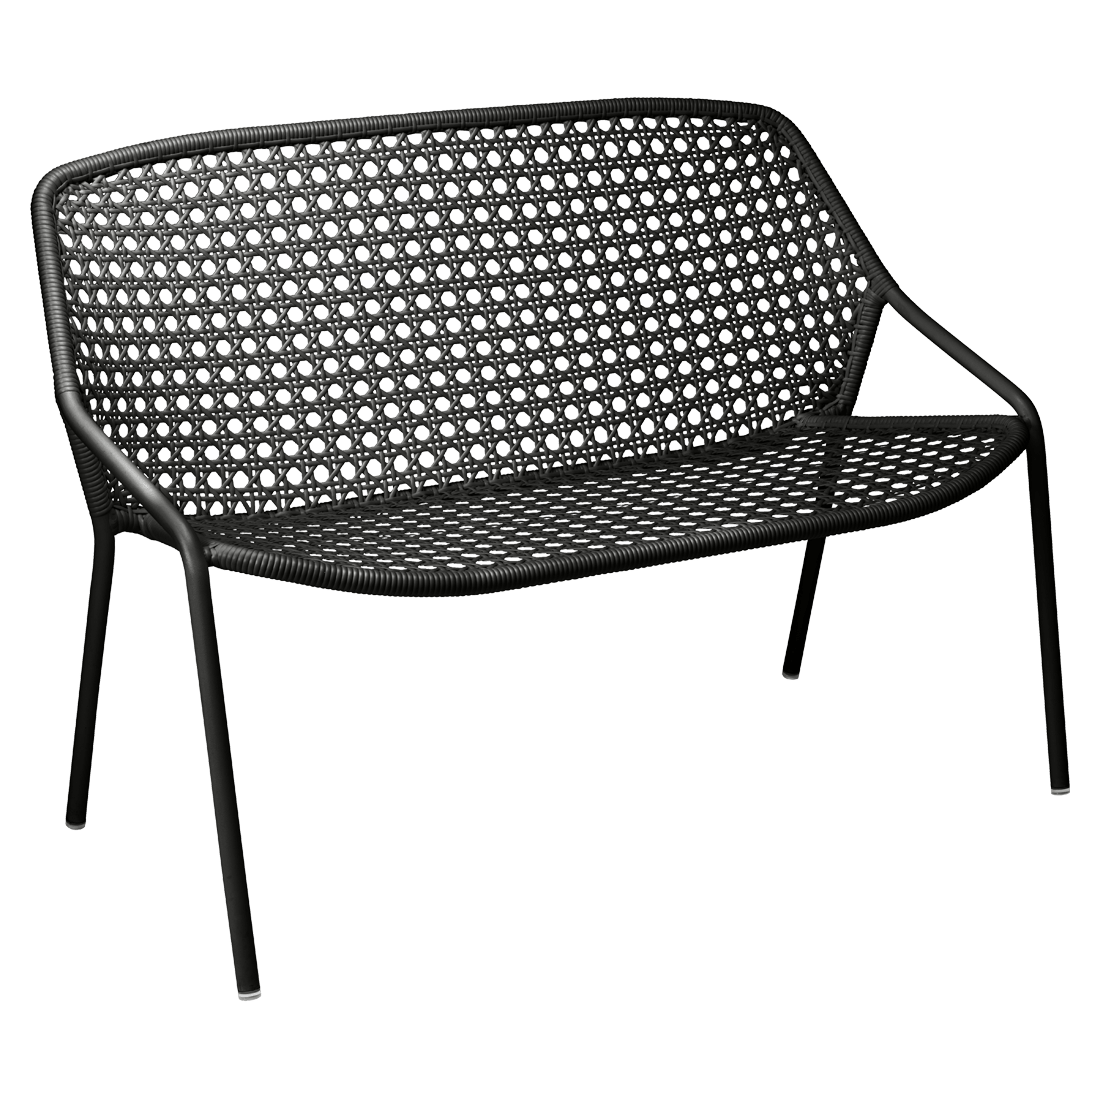 Gartenbank Modern Design Croisette Bench Little Bench For Outdoor Living Space